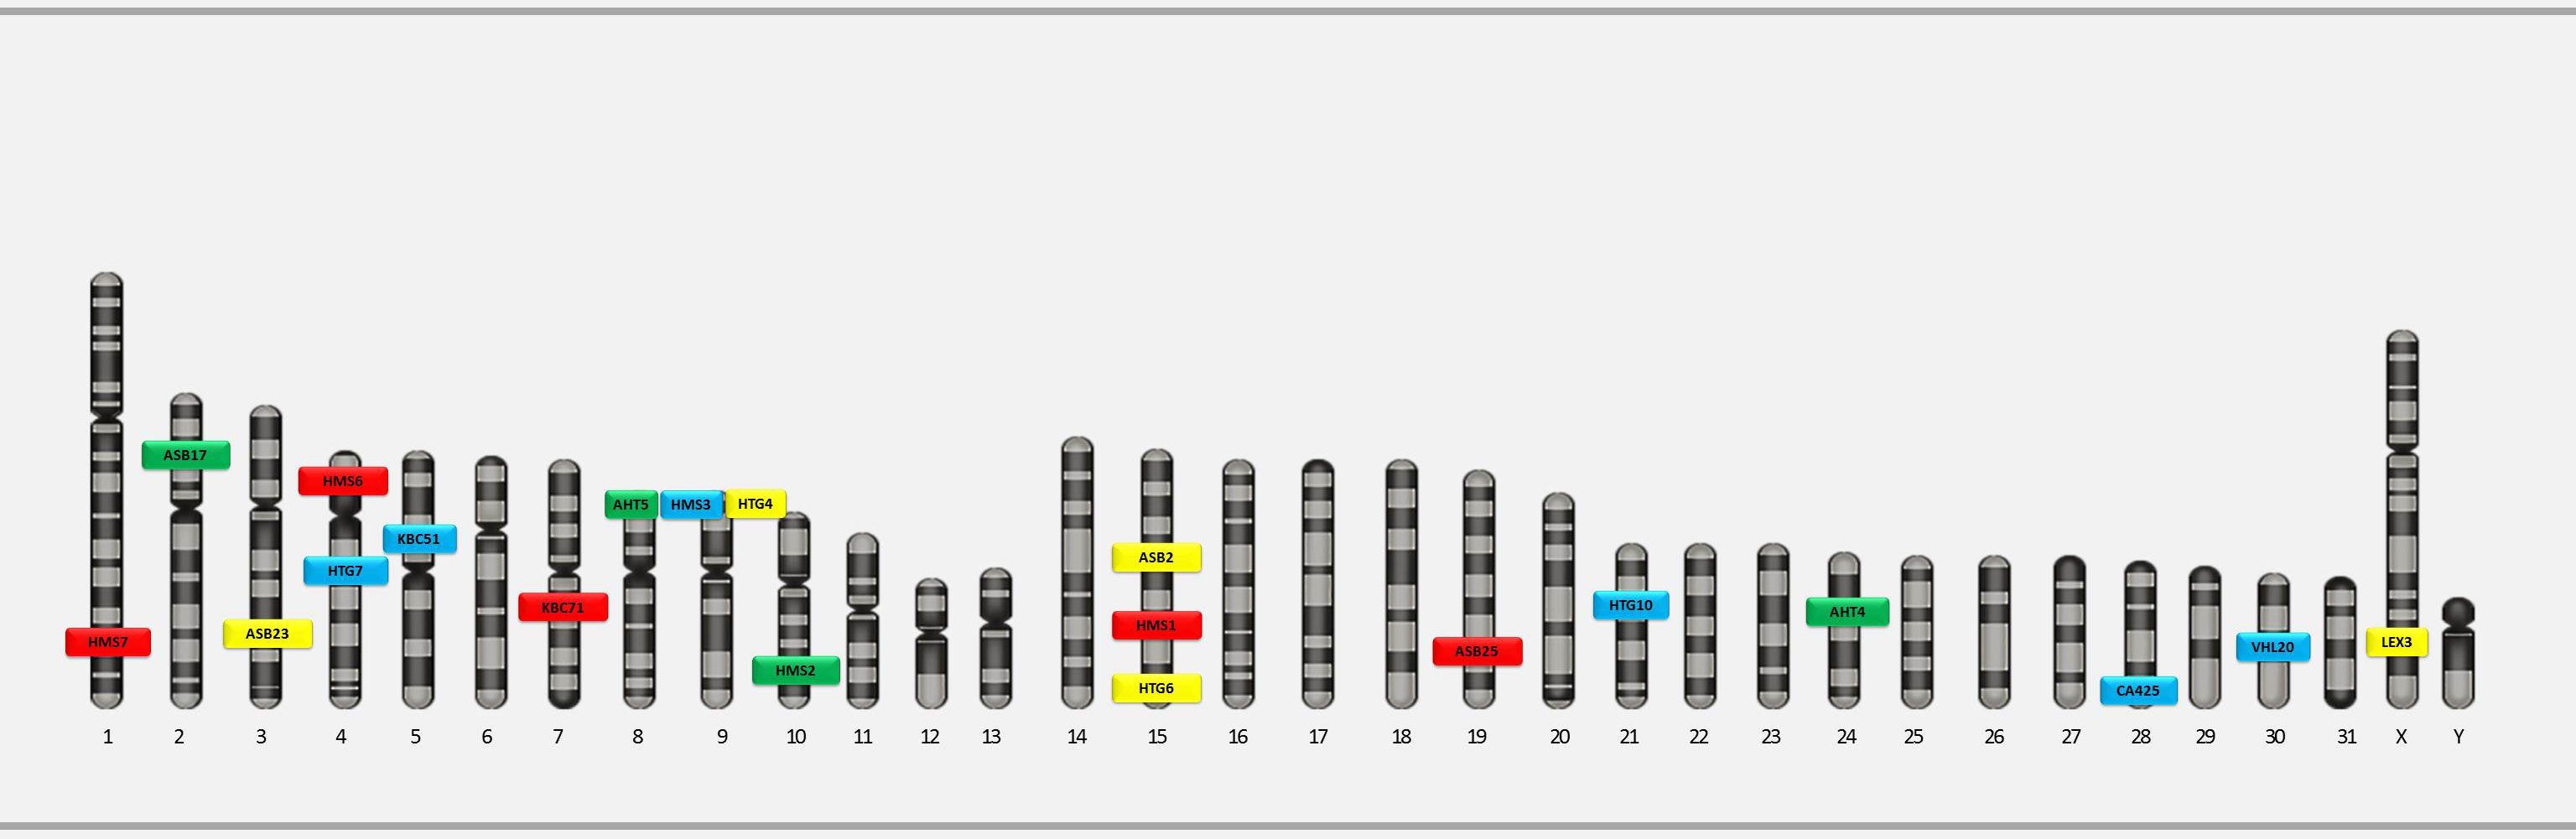 Marker arrangement in GTEquine 5-dye QF-PCR kit for equine DNA identification using QF-PCR technique